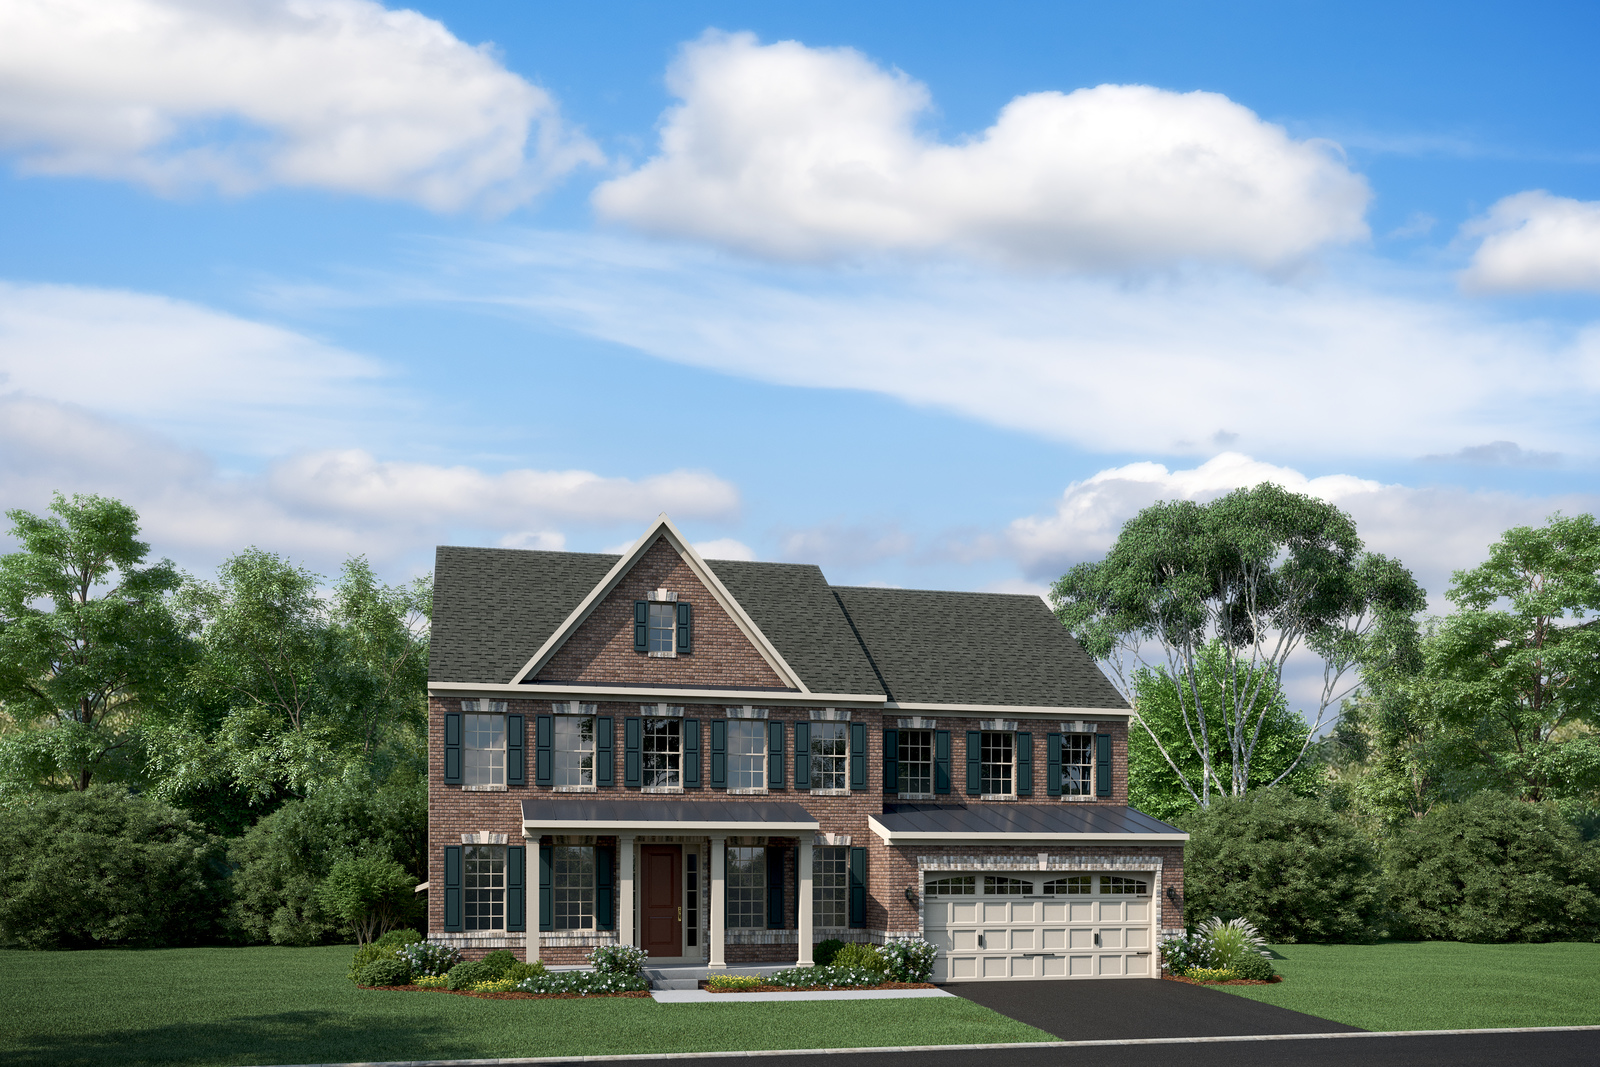 New marymount home model for sale heartland homes for Heartland homes pittsburgh floor plans